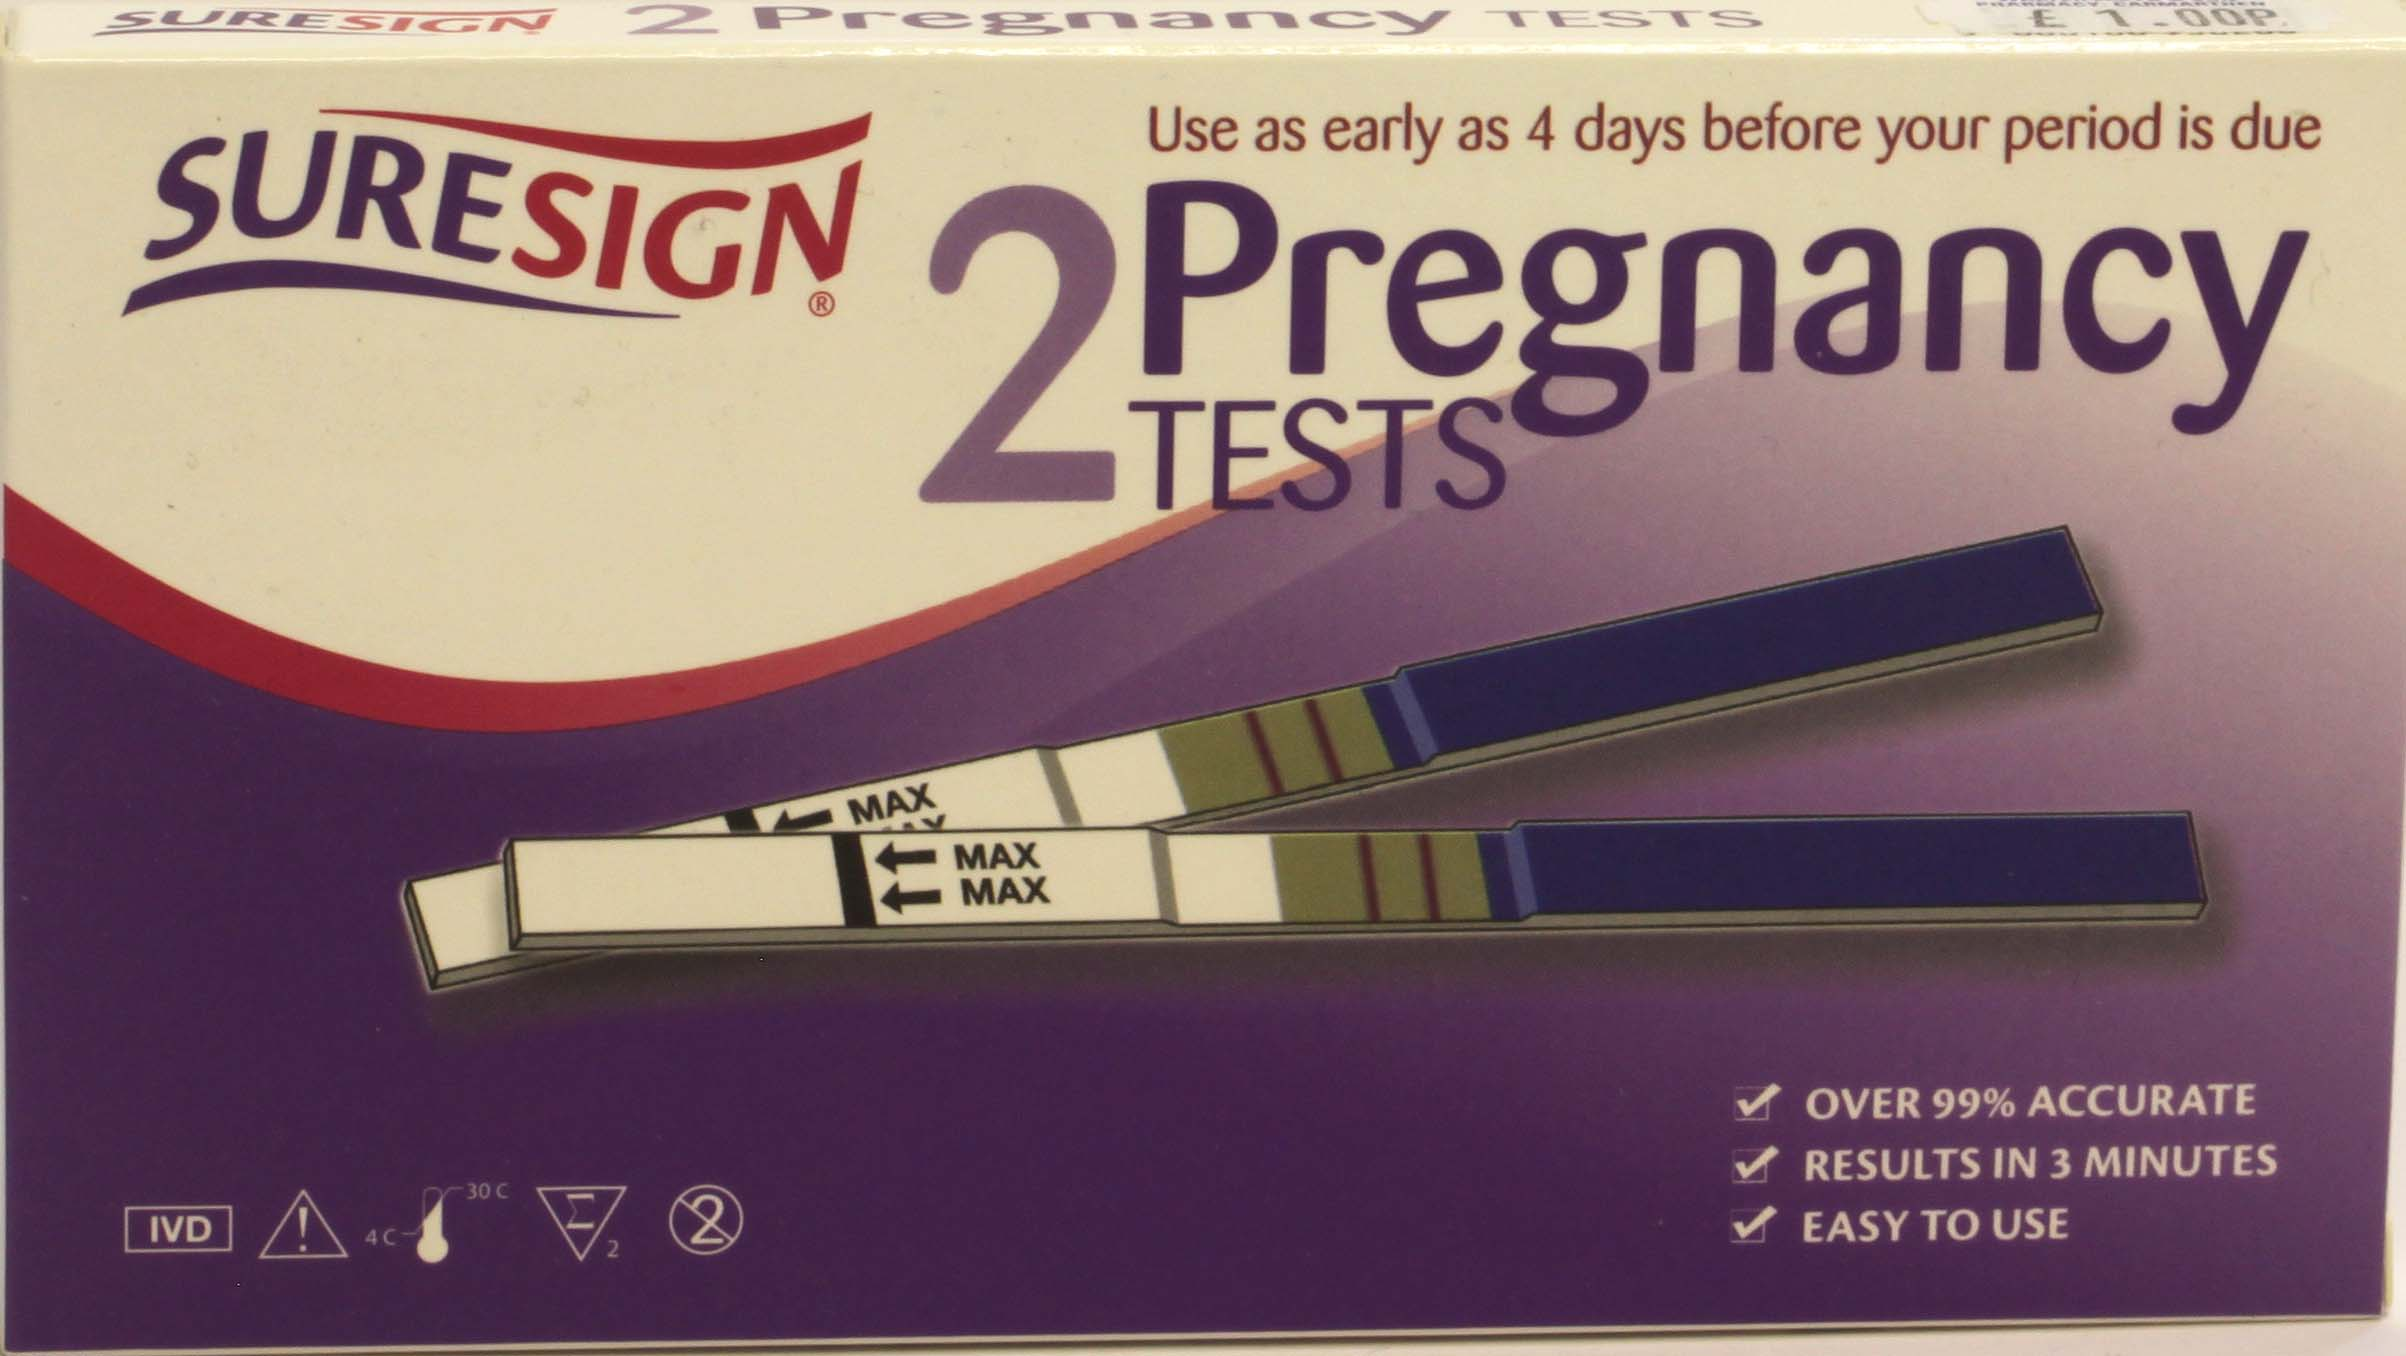 Suresign 2 Pregnancy Tests